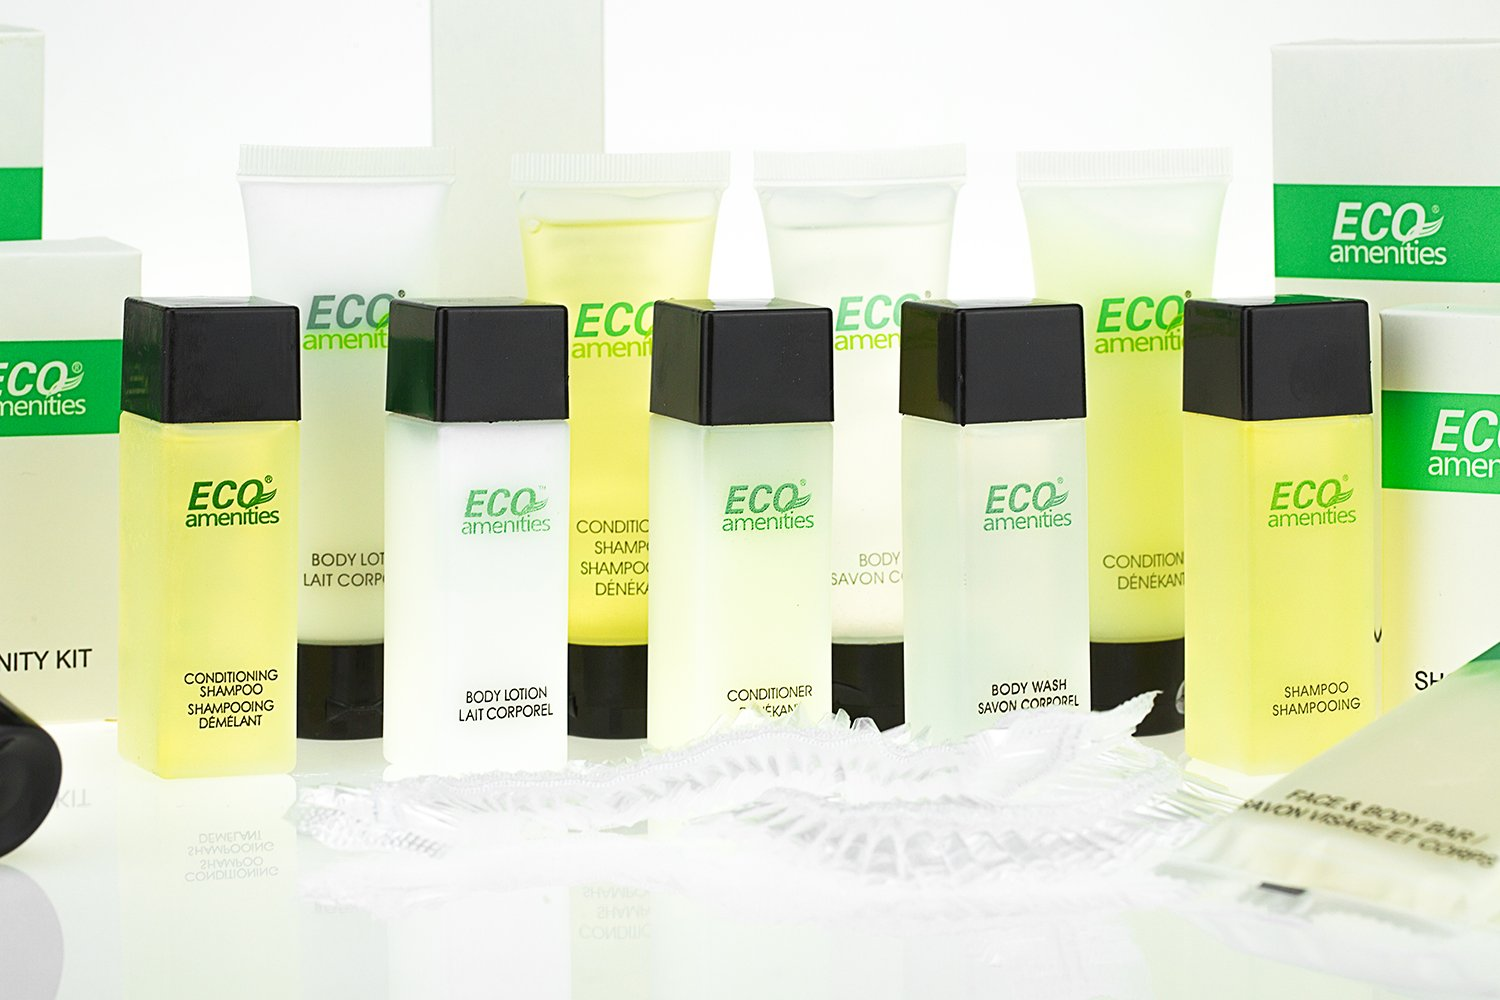 ECO AMENITIES Travel Size Bottle Hotel Conditioner Bulk, White, 1 Ounce, 288 Count by ECO Amenities (Image #3)